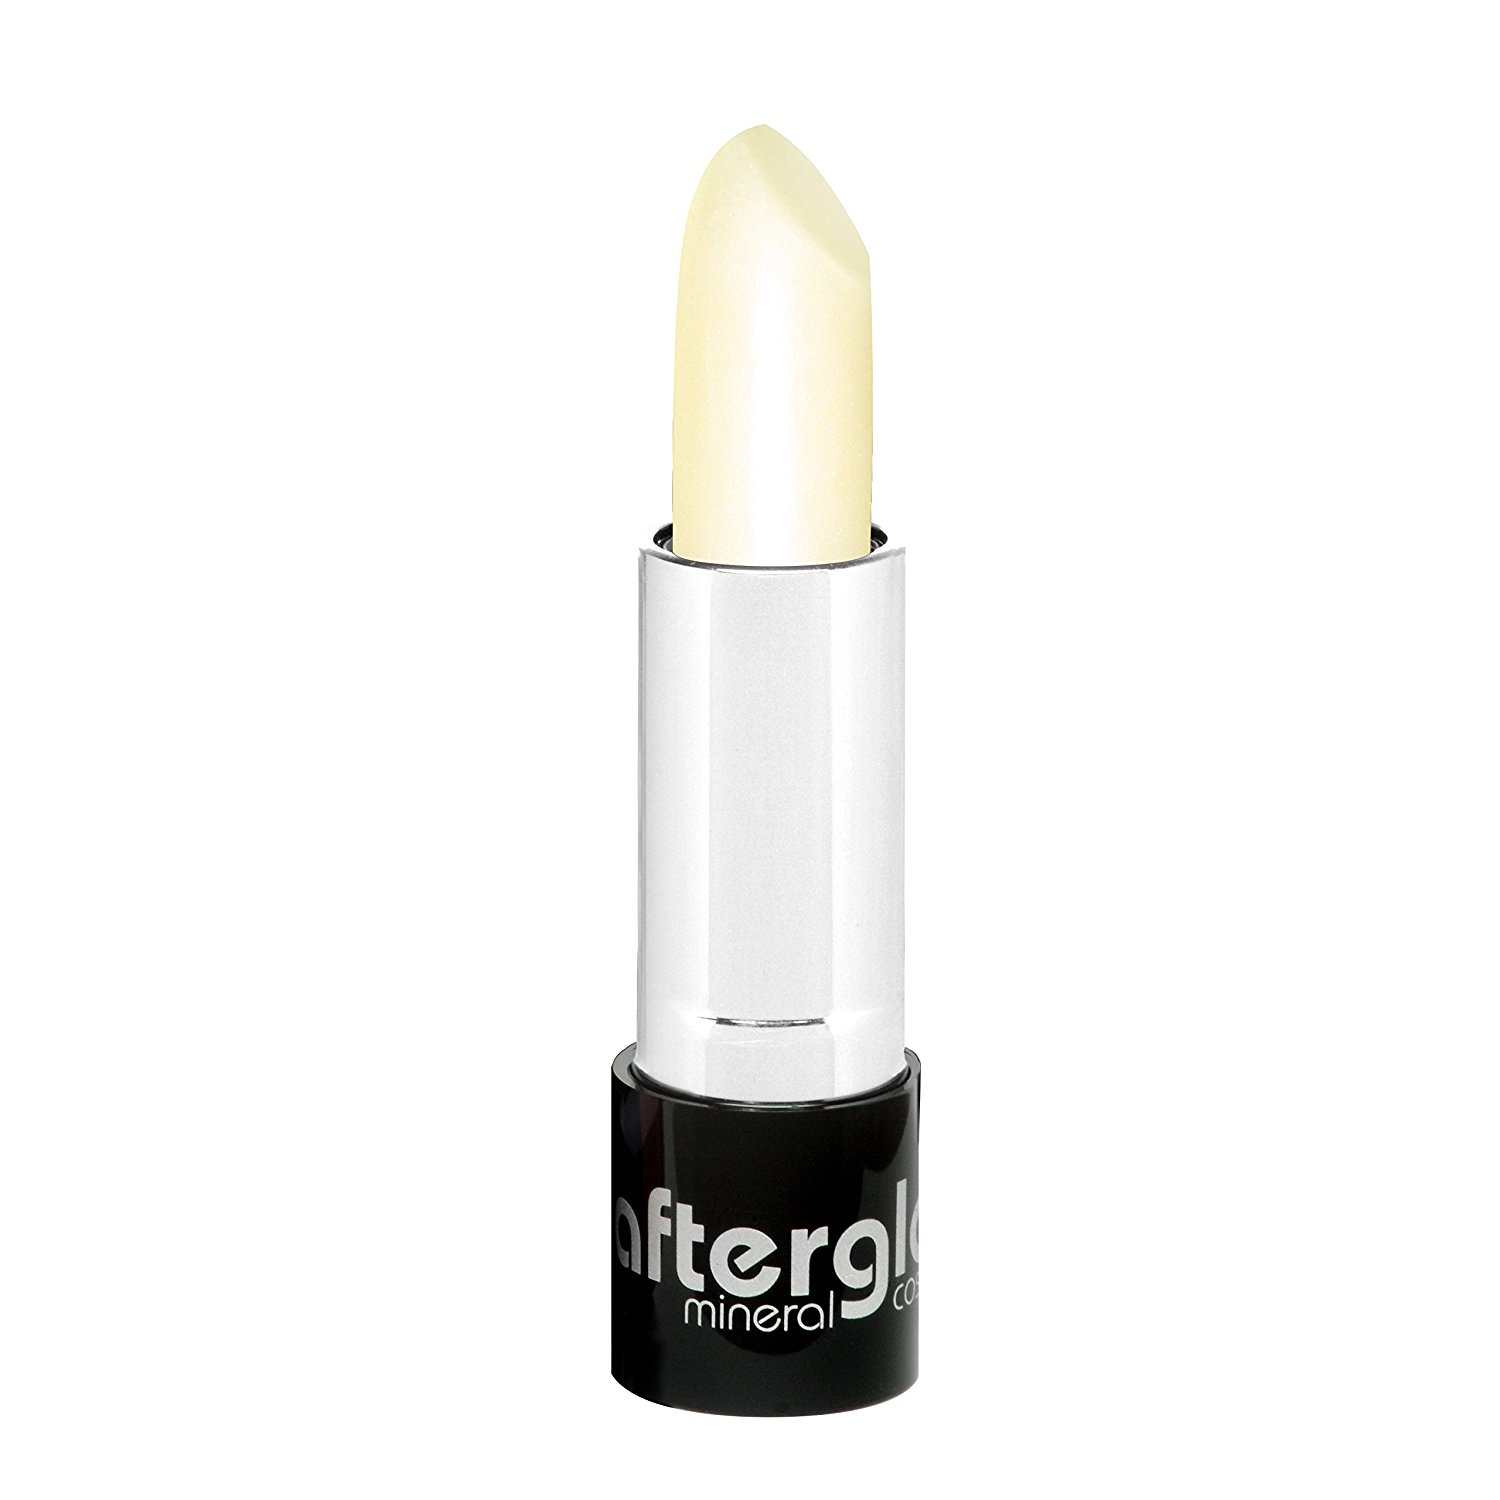 Organic Infused Lip Soother - Certified Gluten-Free (GF), Soy-Free, Synthetic Dye-Free, Non-Toxic, 100% Natural (Coo)